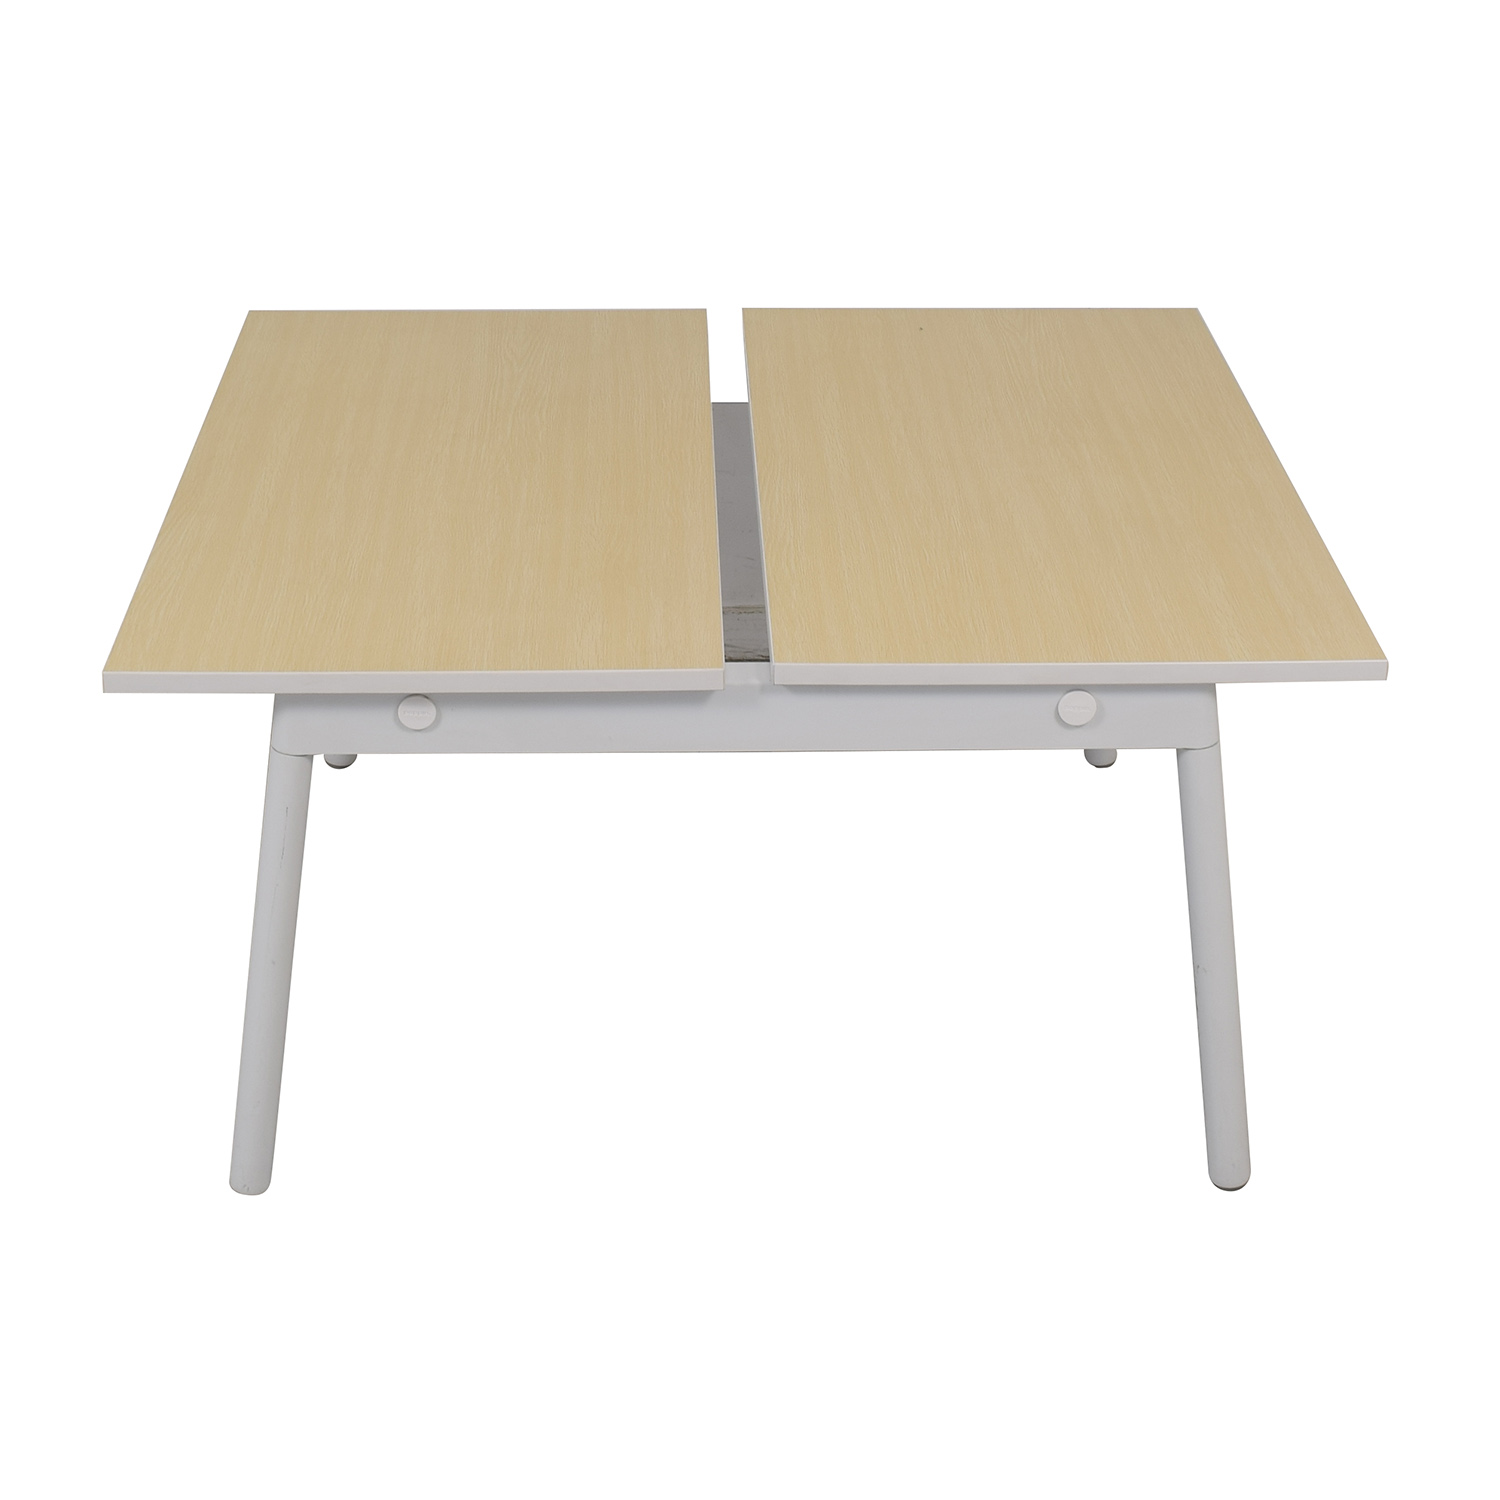 Poppin Poppin Series A Natural Oak Double Desk coupon